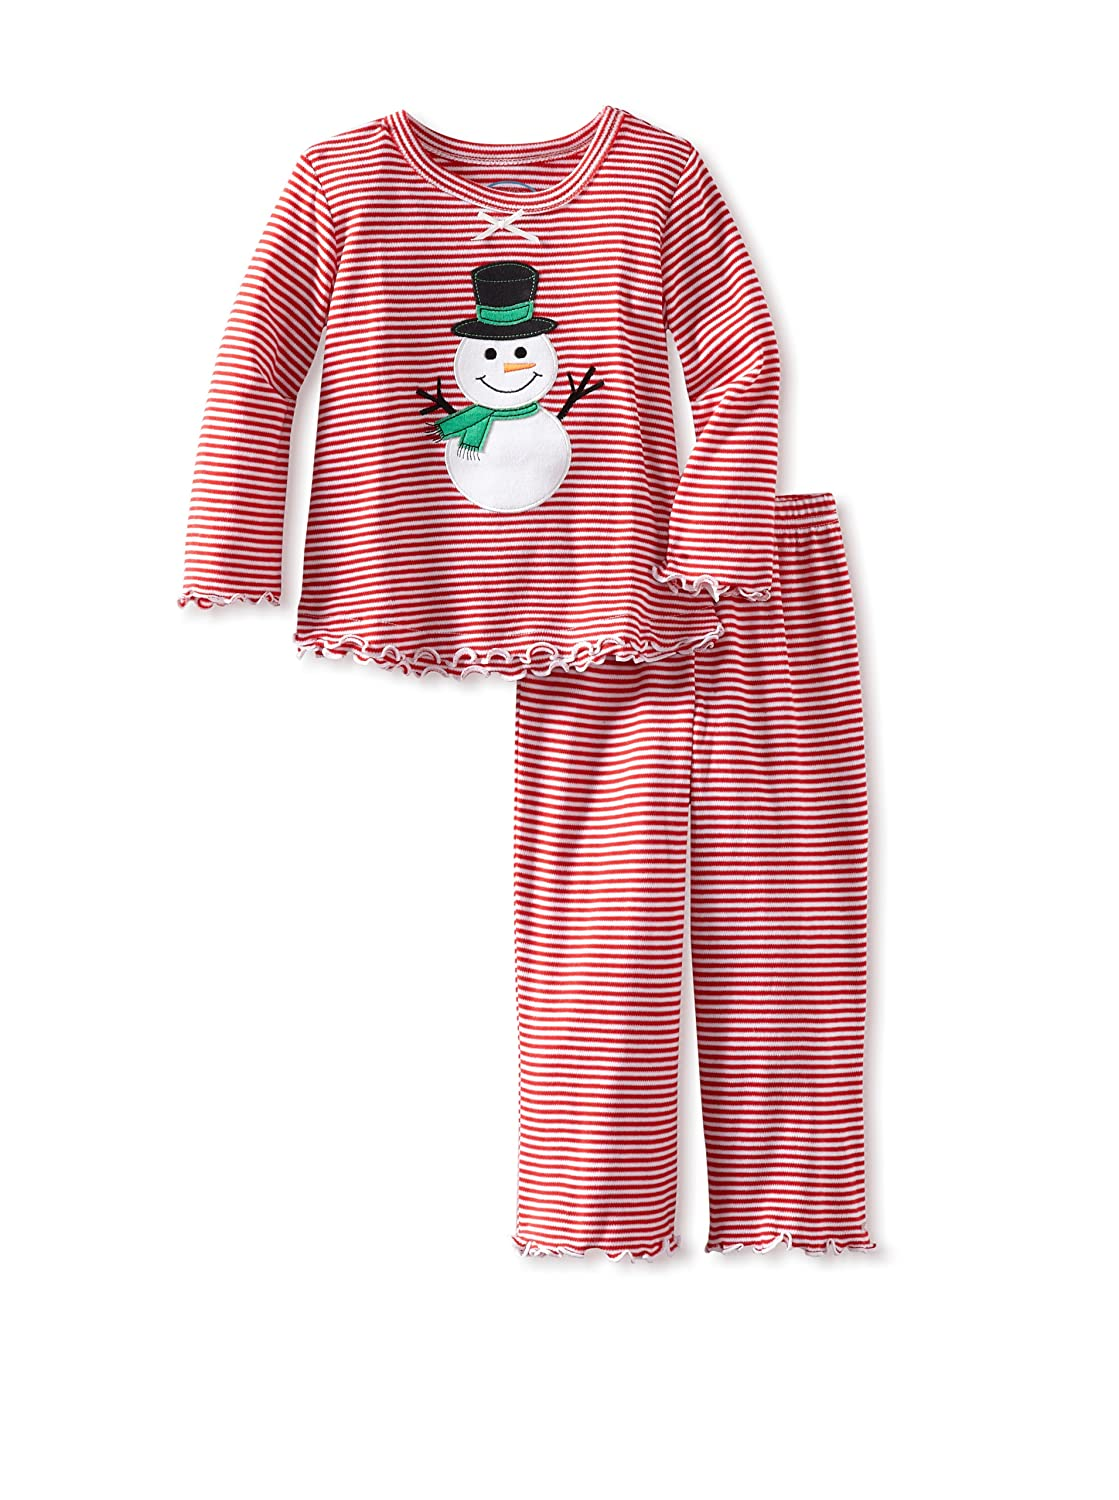 Shop for christmas pajamas for kids online at Target. Free shipping on purchases over $35 and save 5% every day with your Target REDcard.